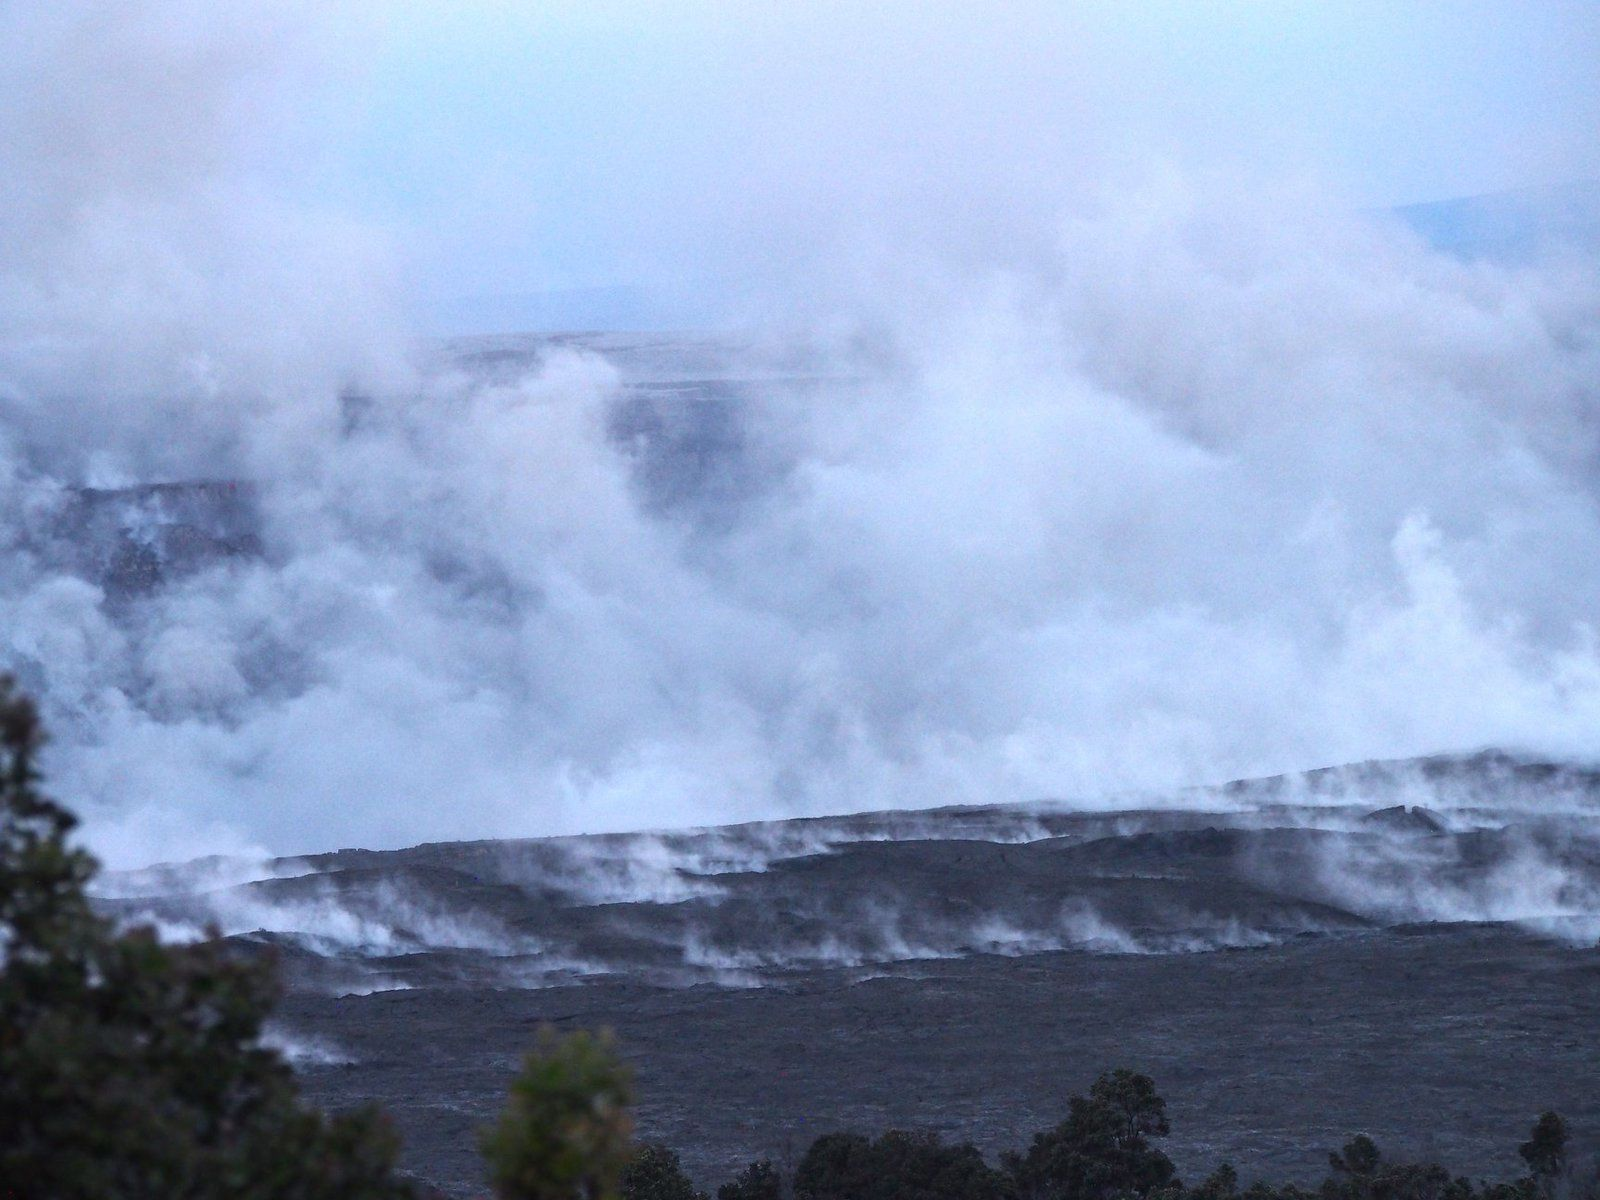 Kilauea summit - 11.07.2018 / 5:48 - Steam tainted with a bit of ash after the collapse / explosion - photo Don Swanson via USGS.